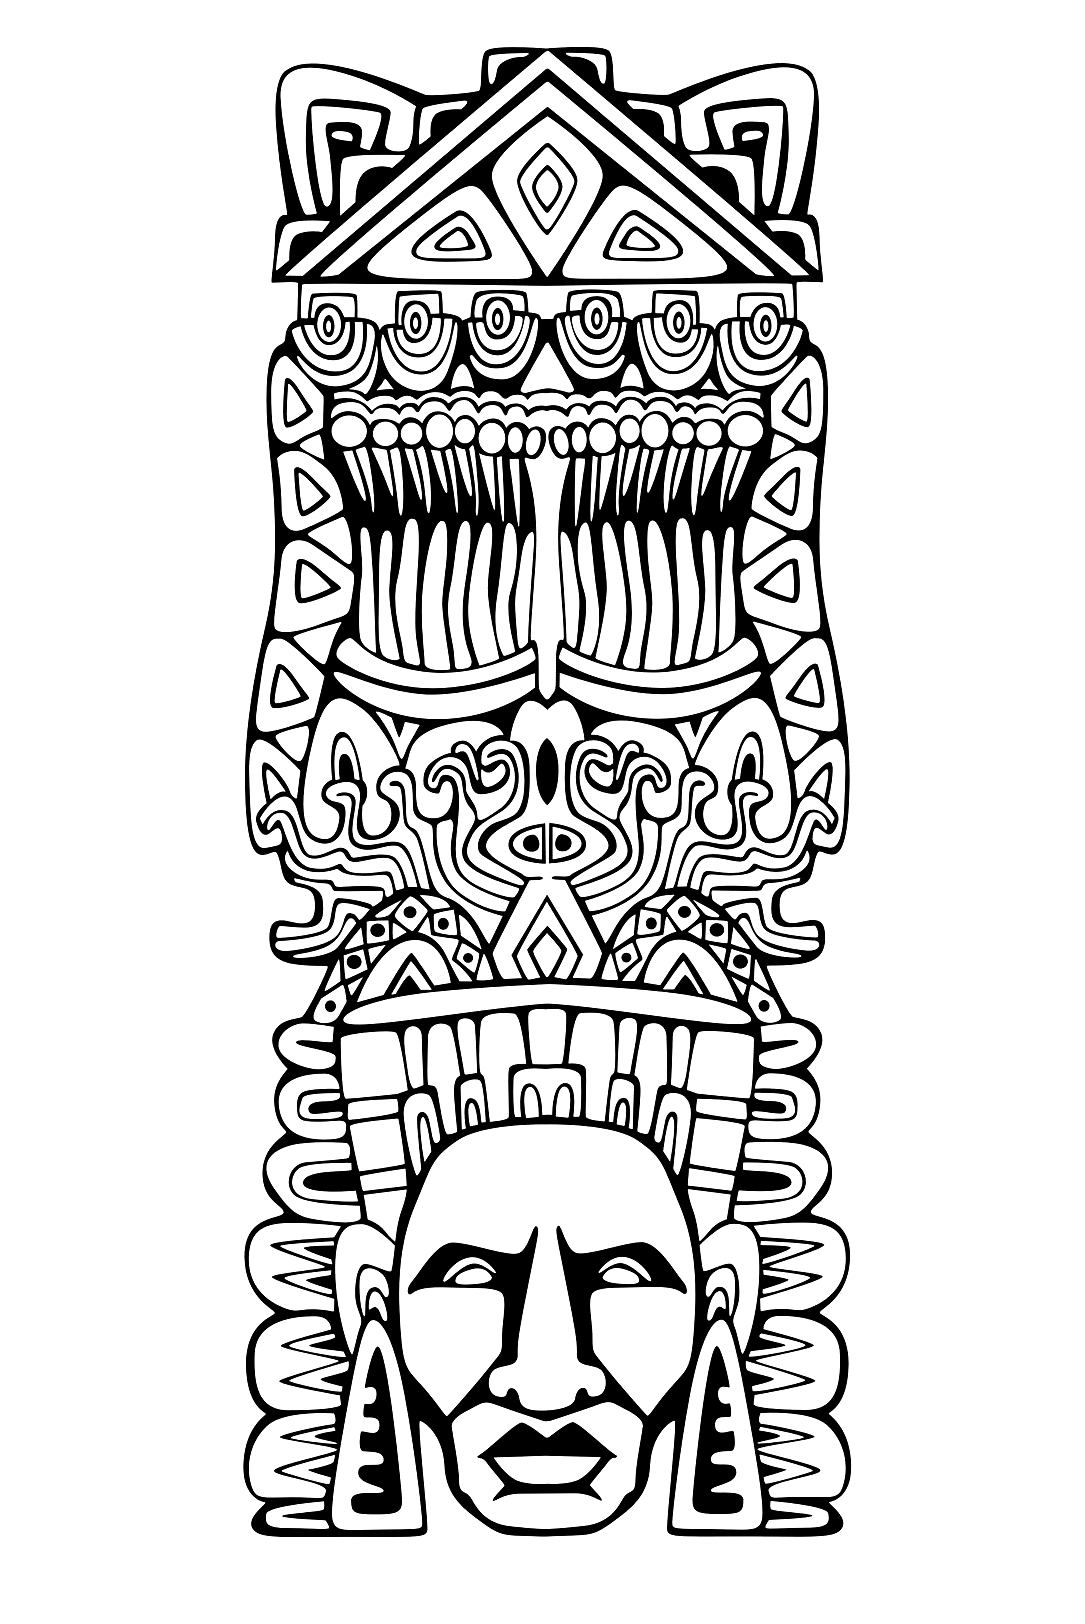 Masks to download - Masks - Coloring pages for kids